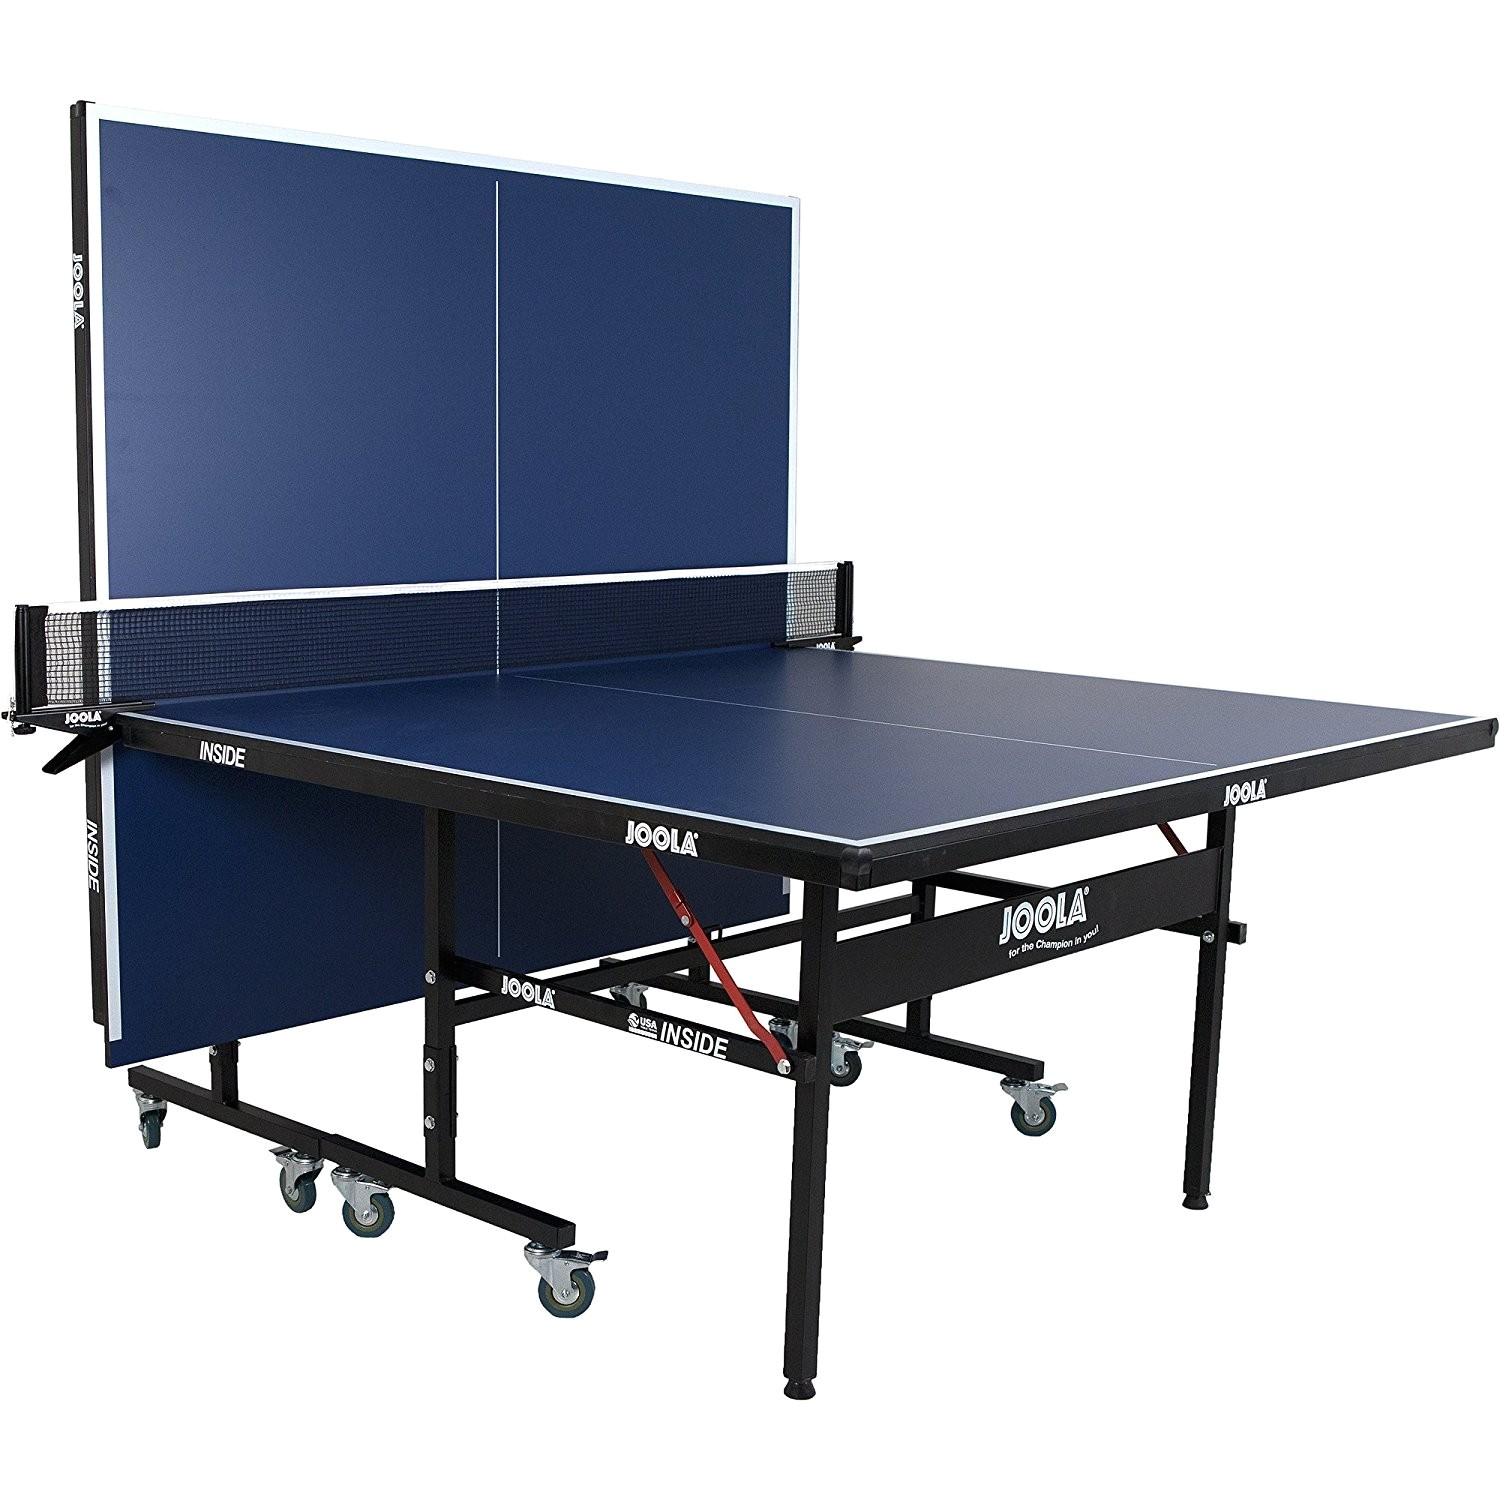 Joola Indoor Outdoor Ping Pong Table Joola Inside 15 Table Tennis Table Best Outdoor Ping